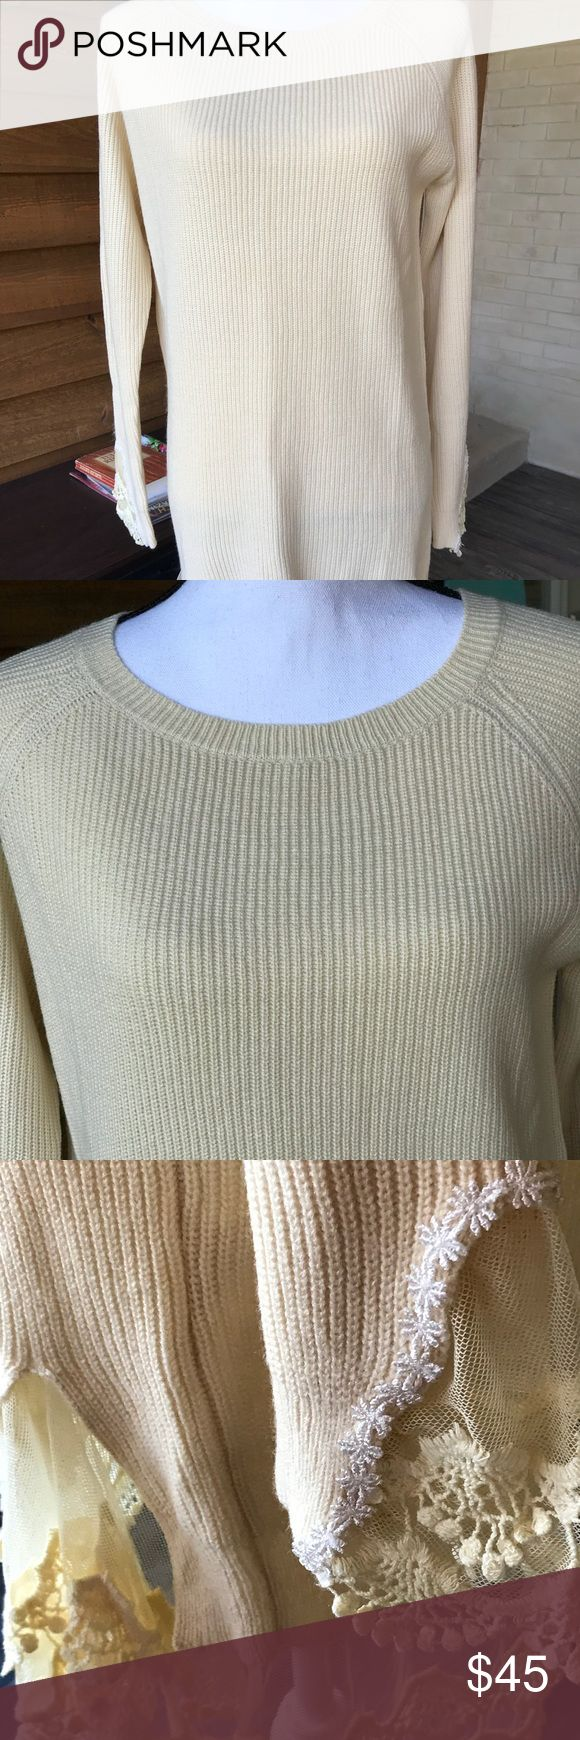 BNWT, XL PALE YELLOW LACE EMBELLISHED SWEATER TOP BRAND NEW WITH TAGS, LADIES SIZE XL PALE YELLOW & LACE EMBELLISHED LONG SLEEVE SWEATER TOP.  This sweater top is amazing!  Very feminine & long enough that it could be worn as a dress.  It would also look great with a pair of leggings!  Dress it up or wear it causally, you are sure to look great & receive many many compliments!  Very soft & comfy!  The lace details are so pretty & soft as well!!!  Many more pics and info available upon…